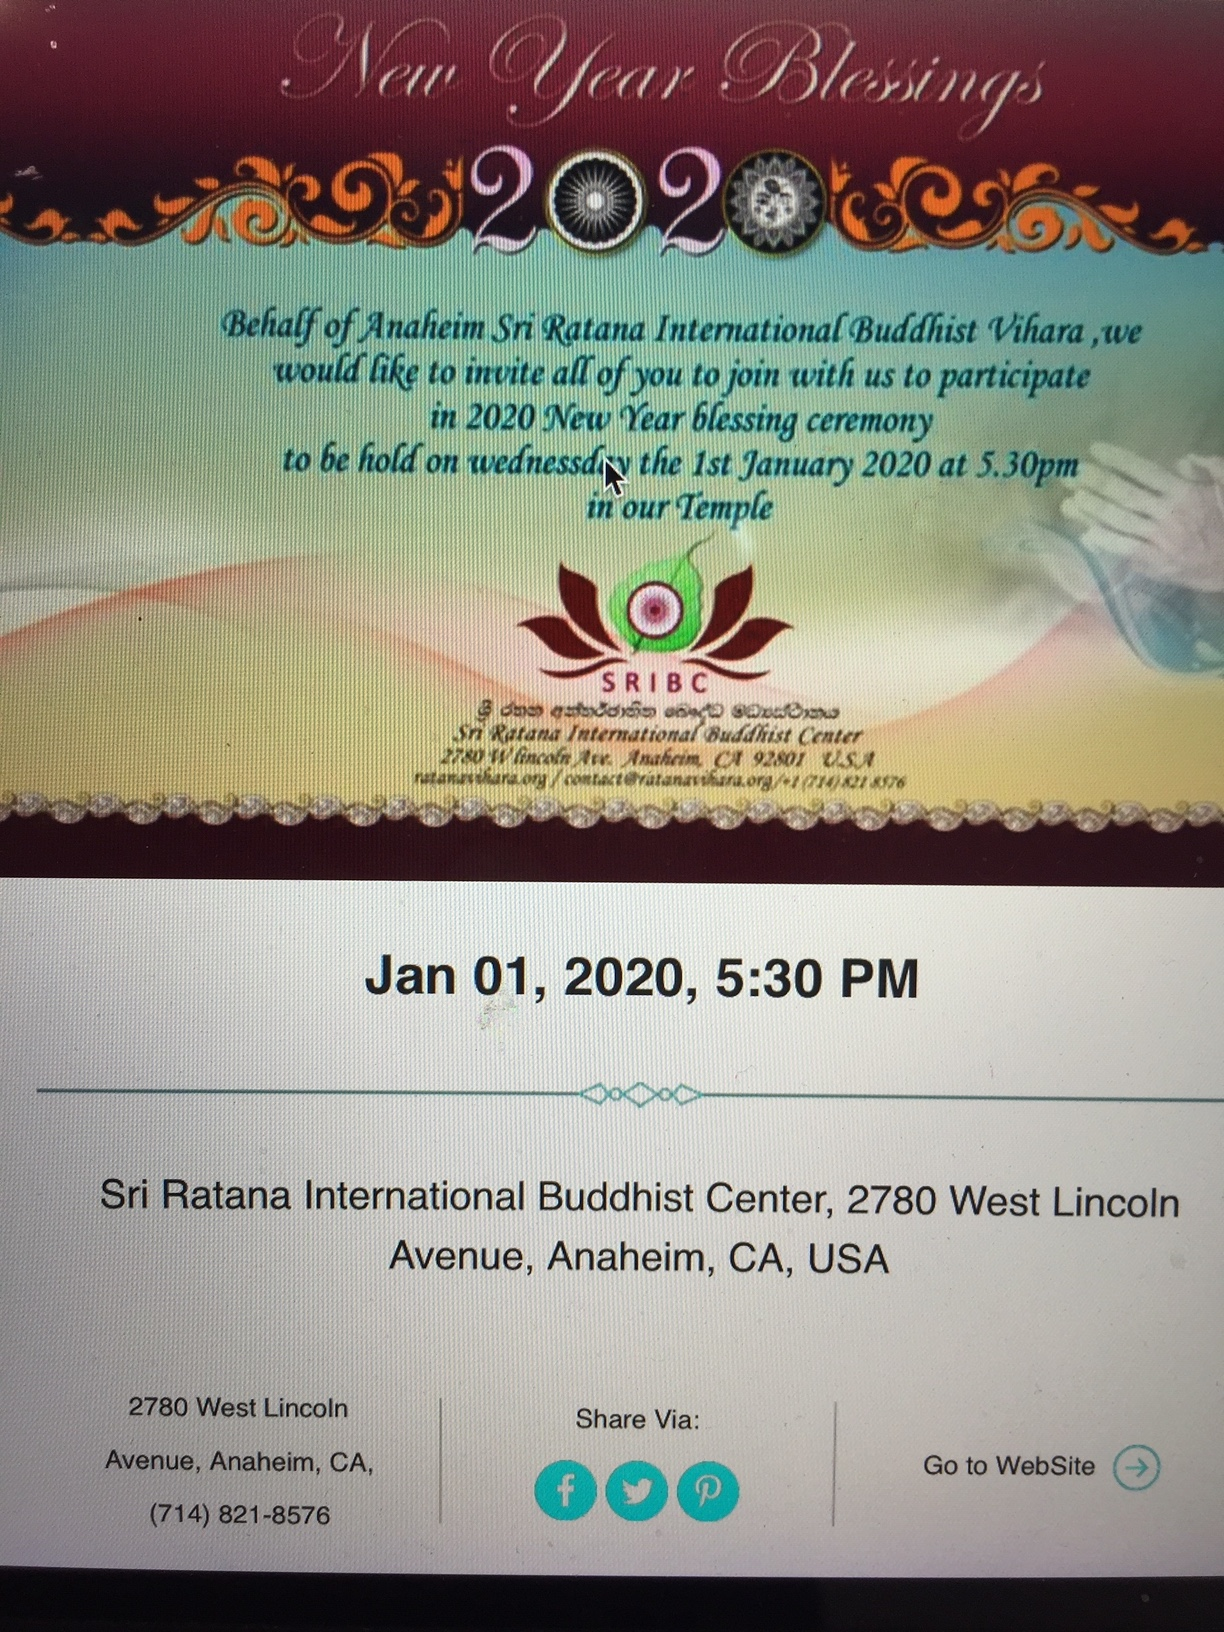 2020 New Year Blessing Ceremony